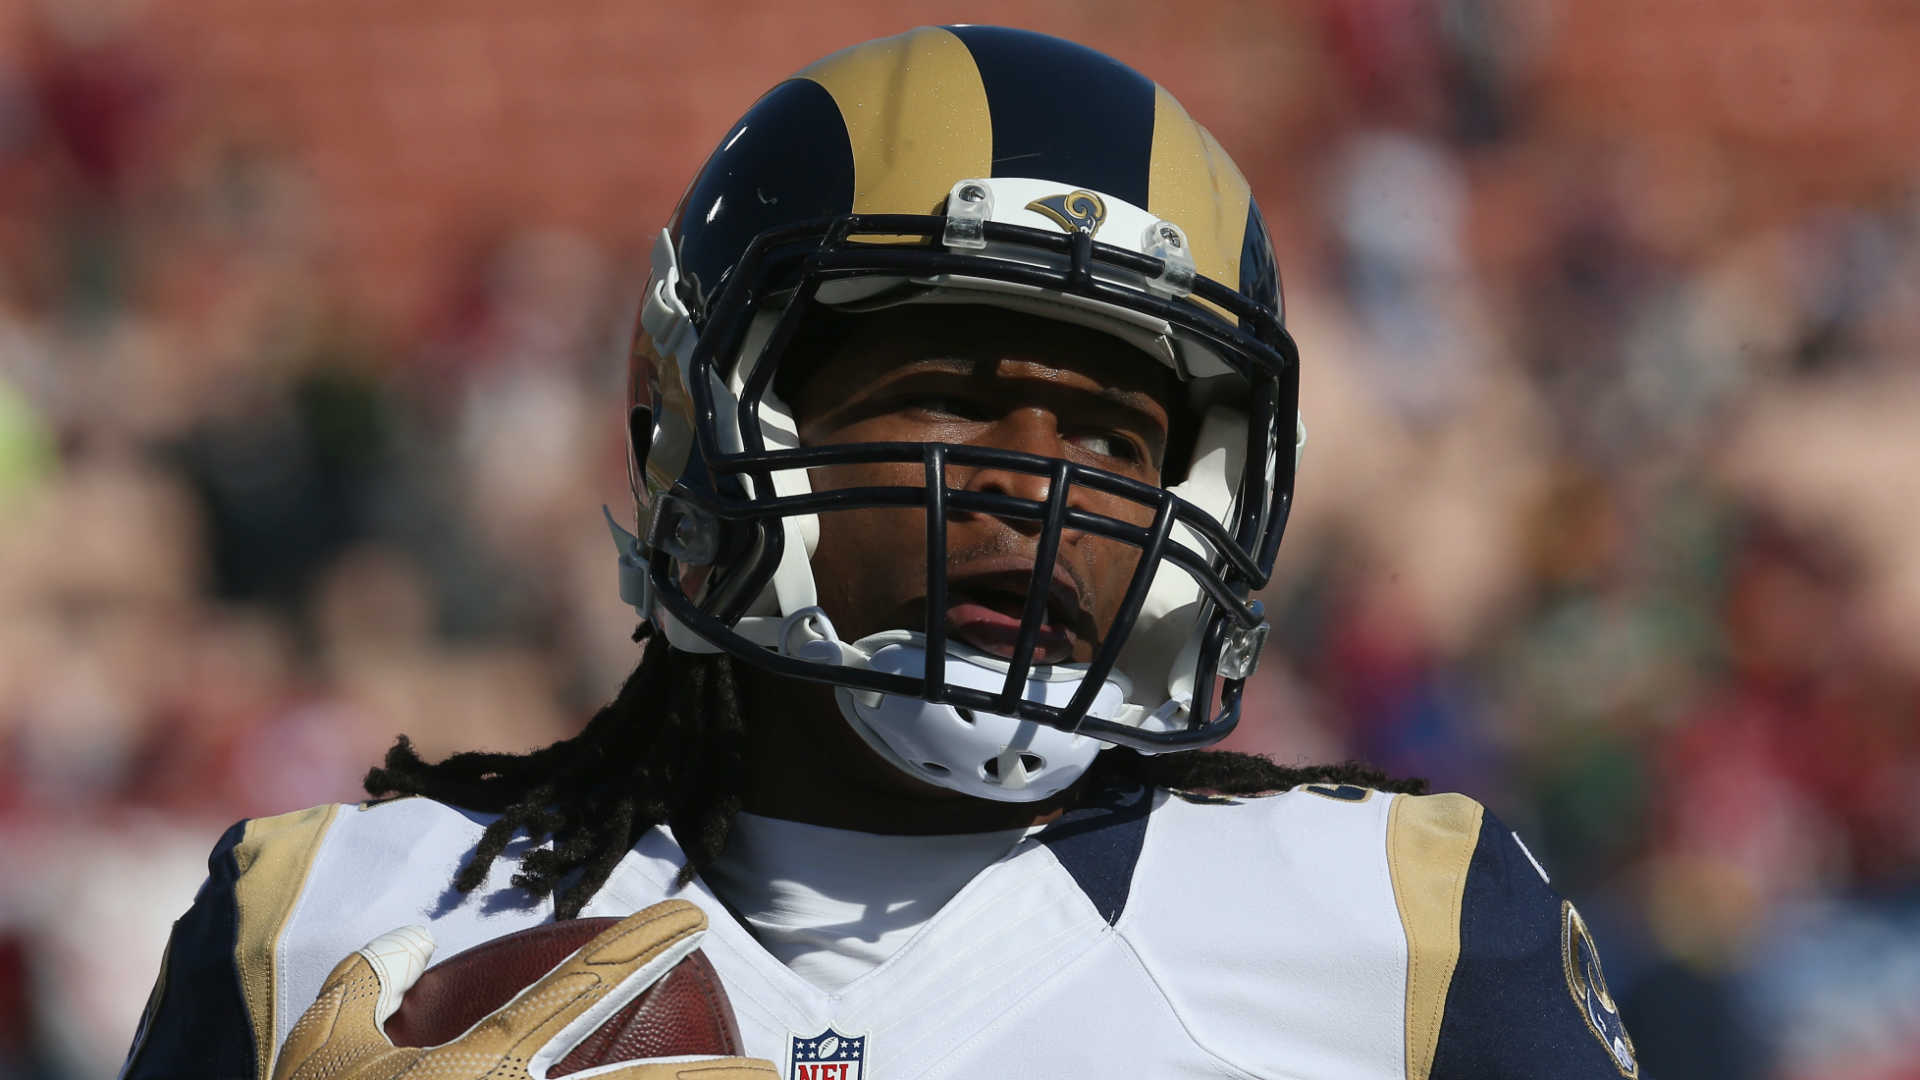 Todd Gurley personally asked new Rams coach Sean McVay to keep RBs